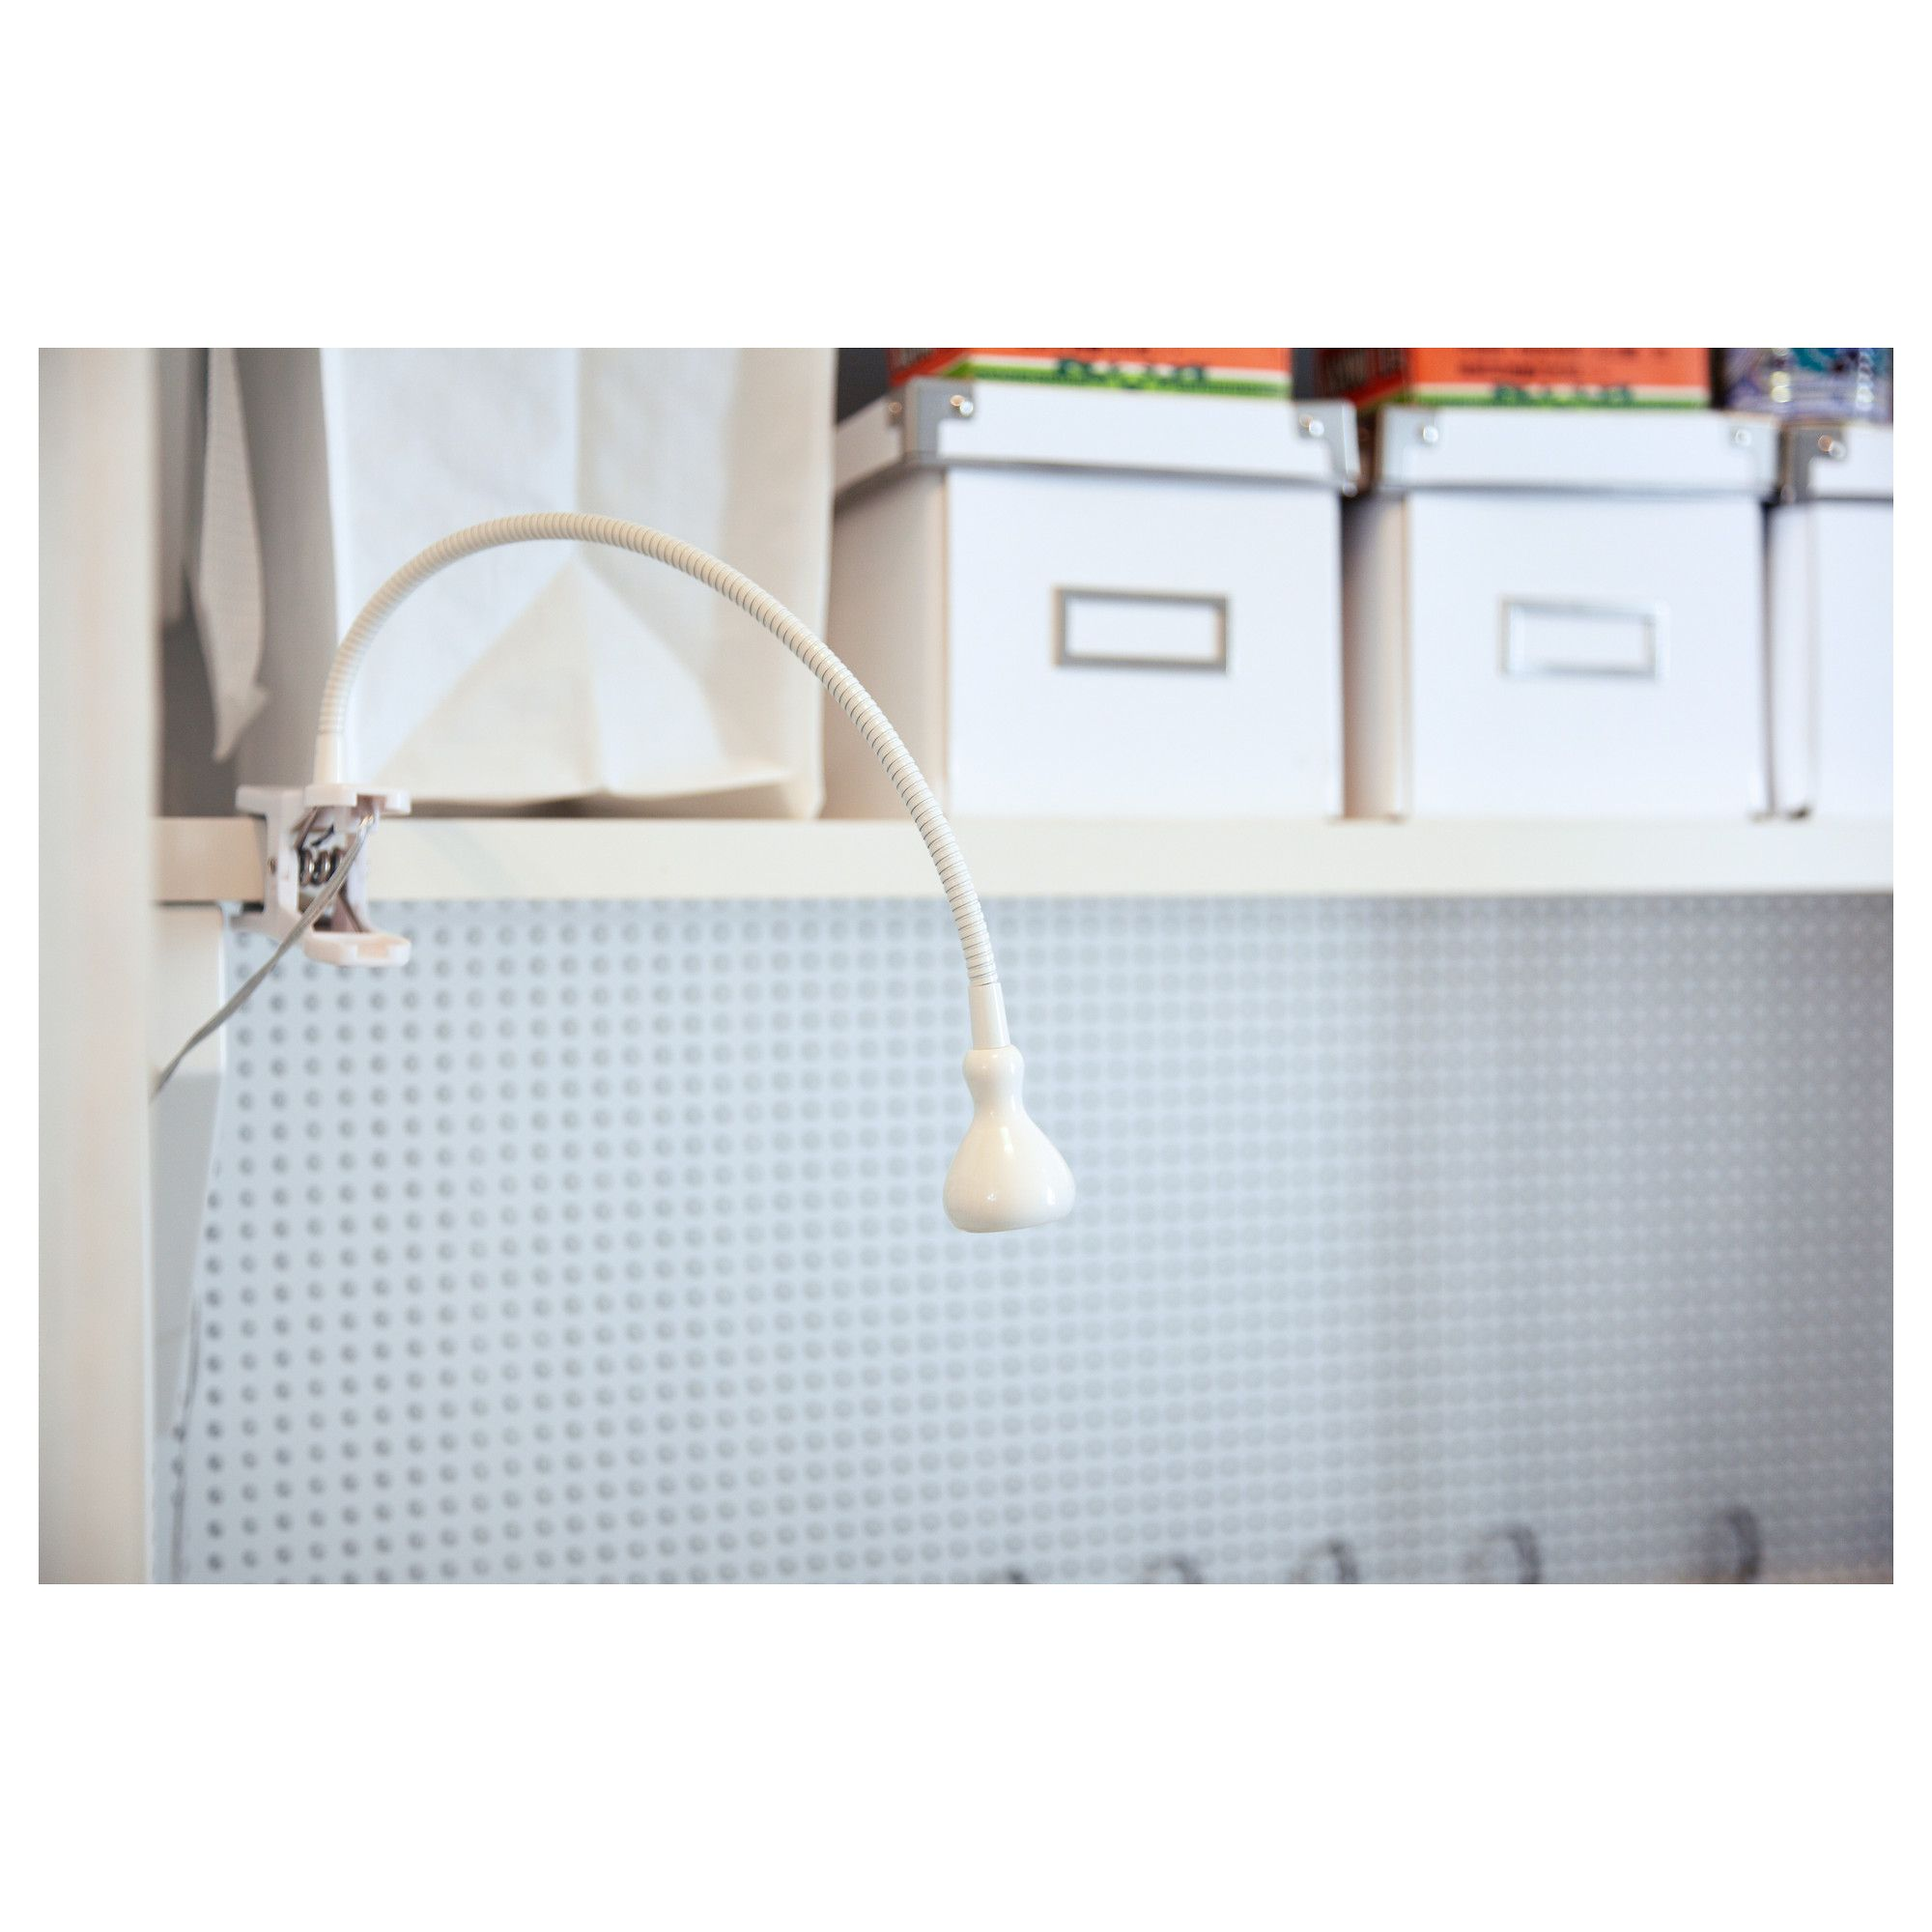 Furniture and Home Furnishings Ikea, Floor lamp with